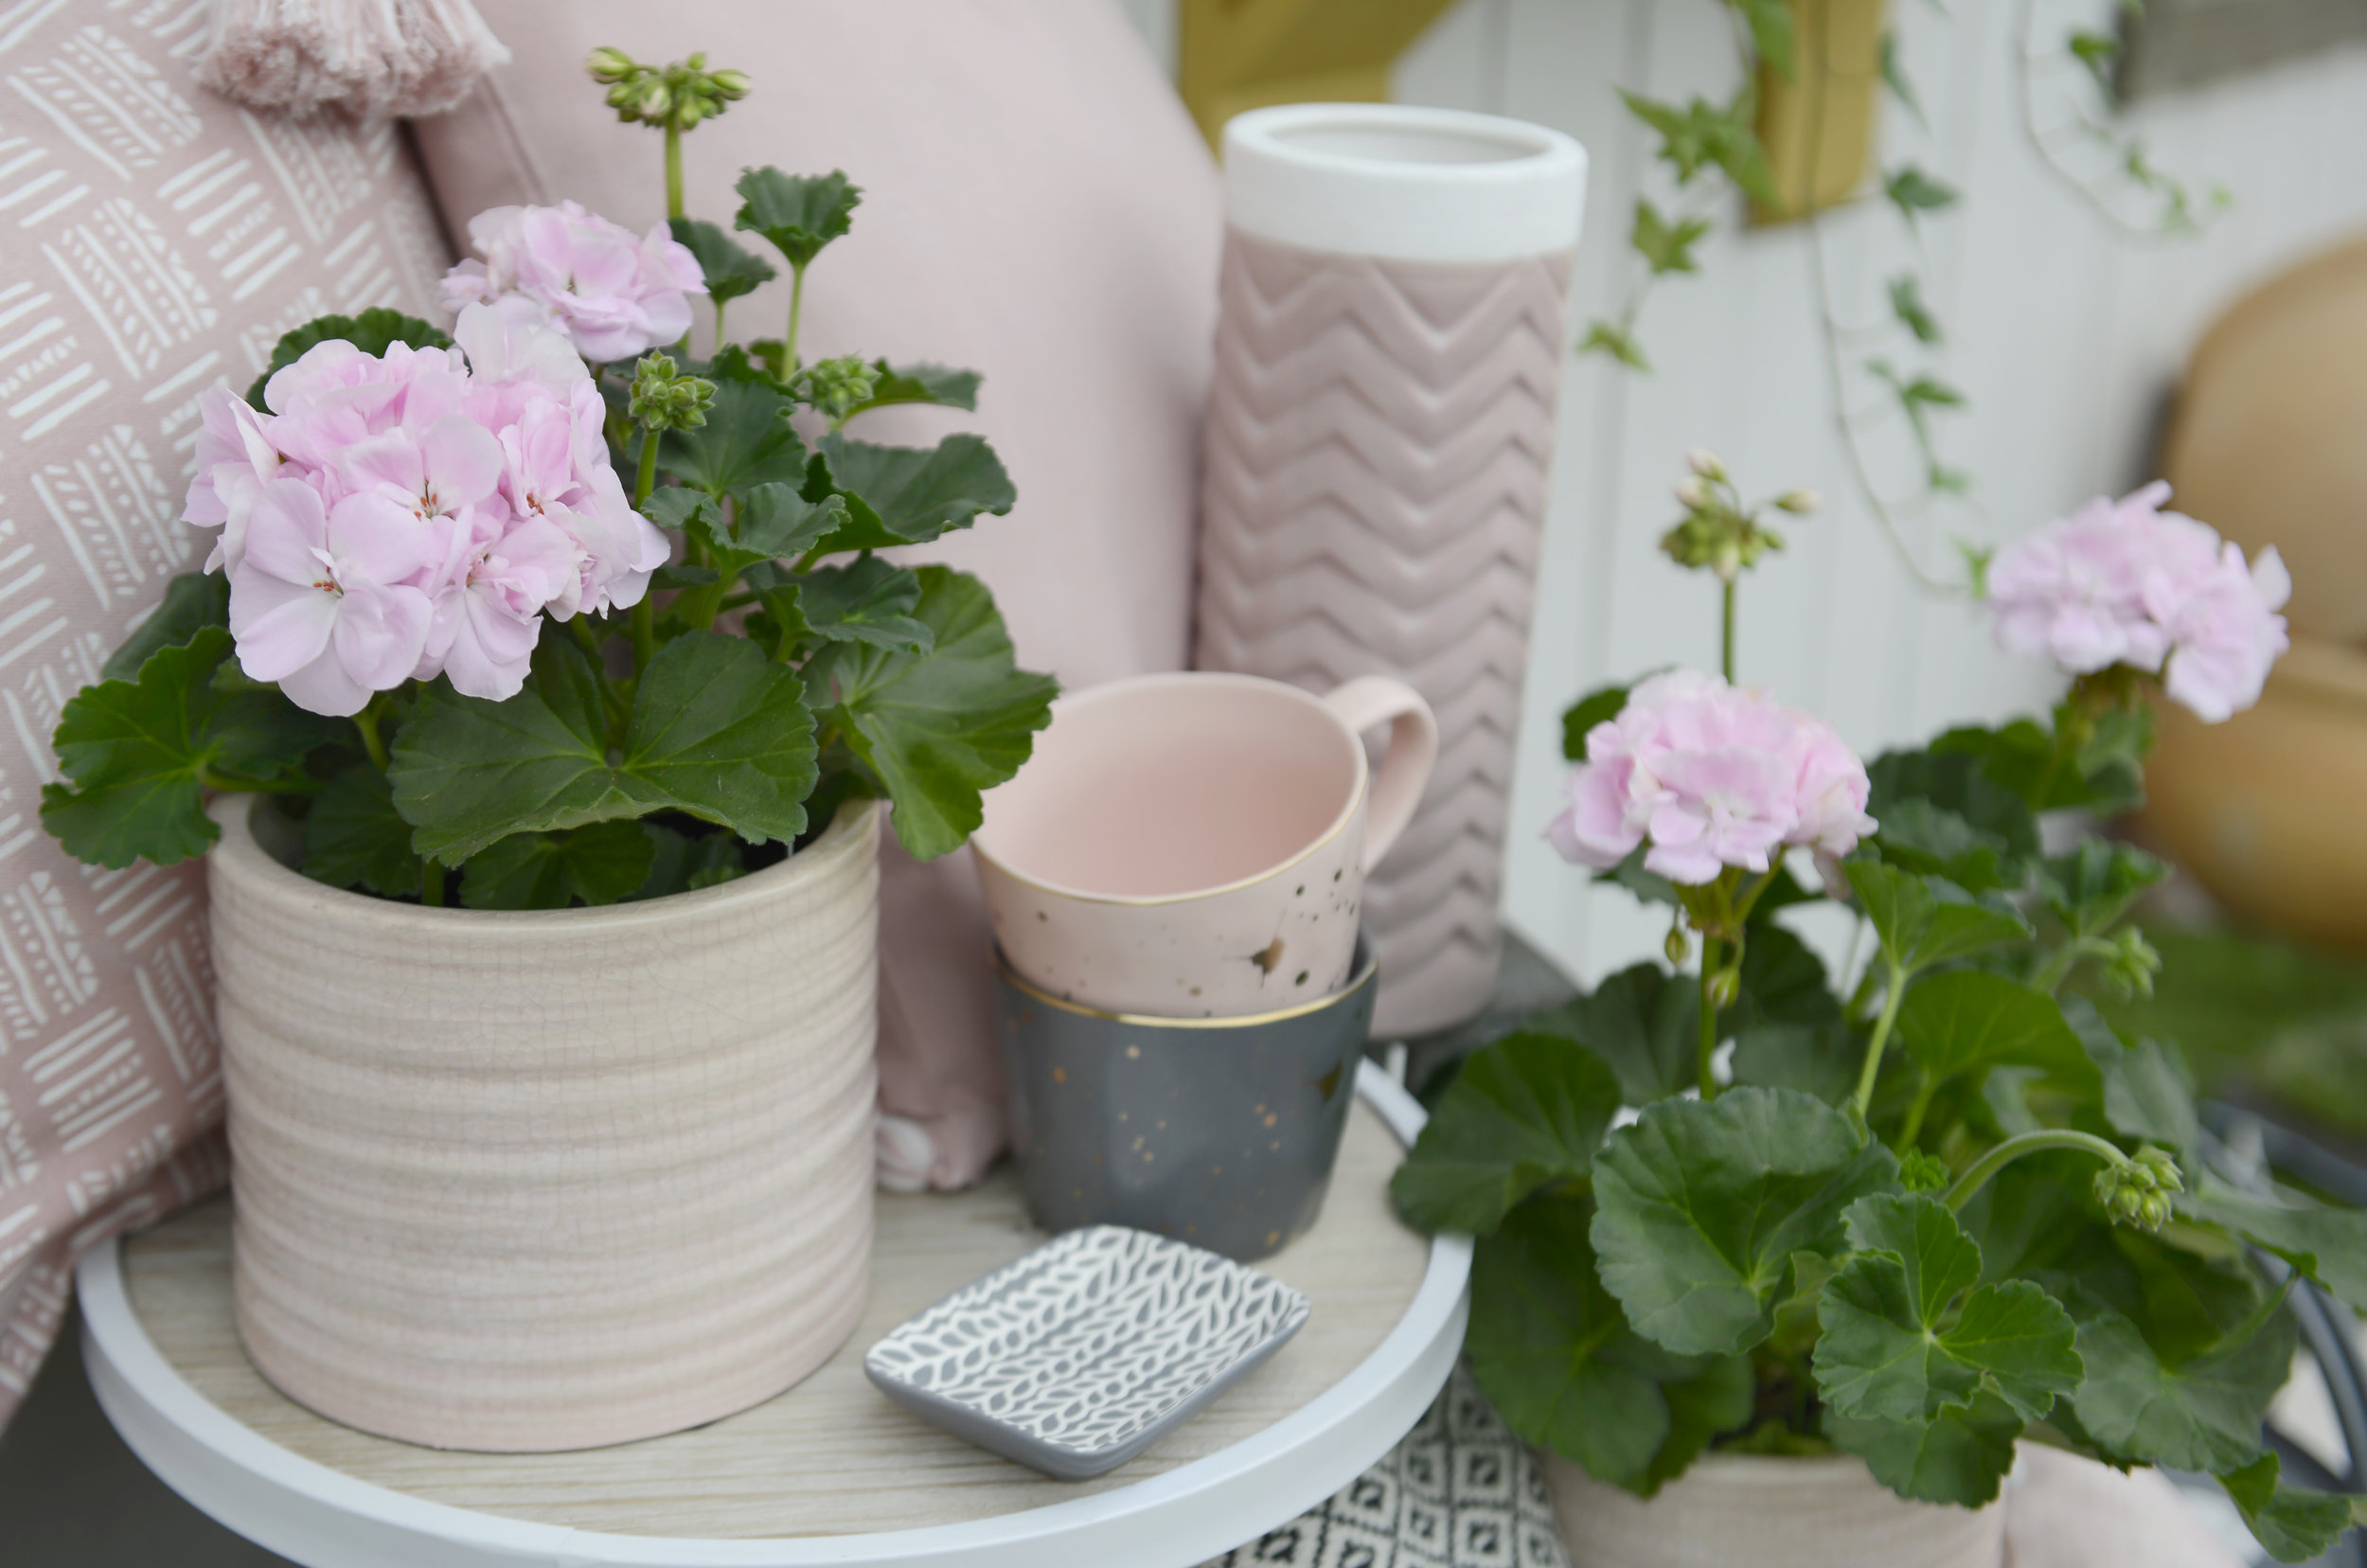 Here comes the Sun! - Summer has finally arrived and with it brings these gorgeous pale pink geraniums. And we all know pale pink and grey is a match made in heaven <3